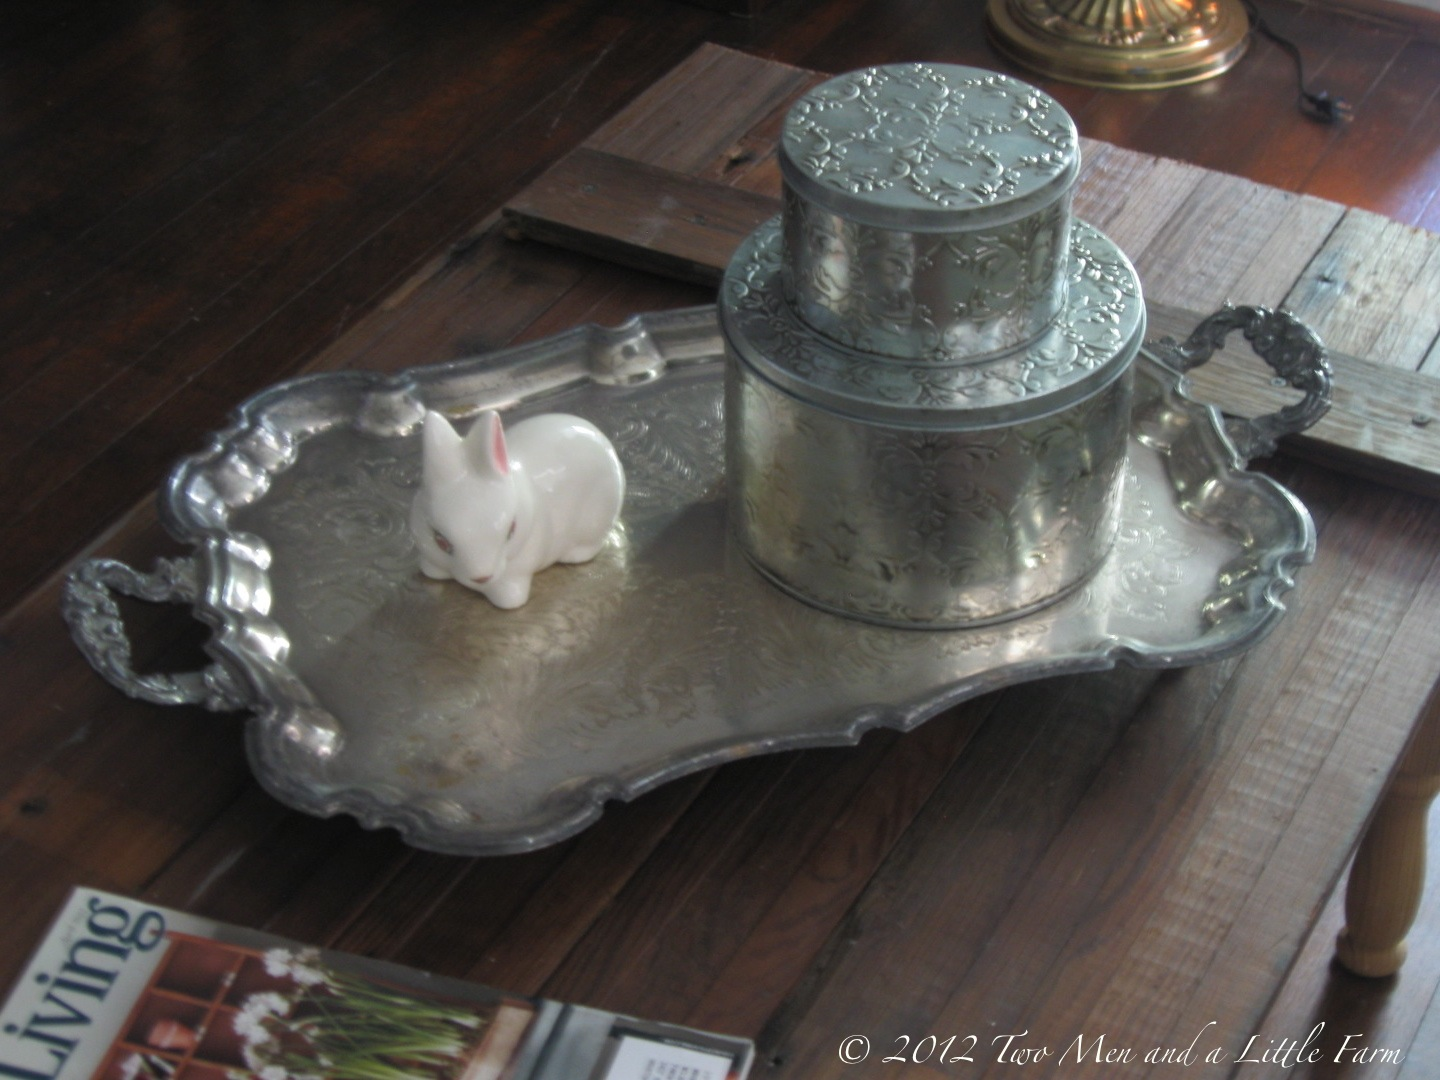 The Silver Coffee Table Tray